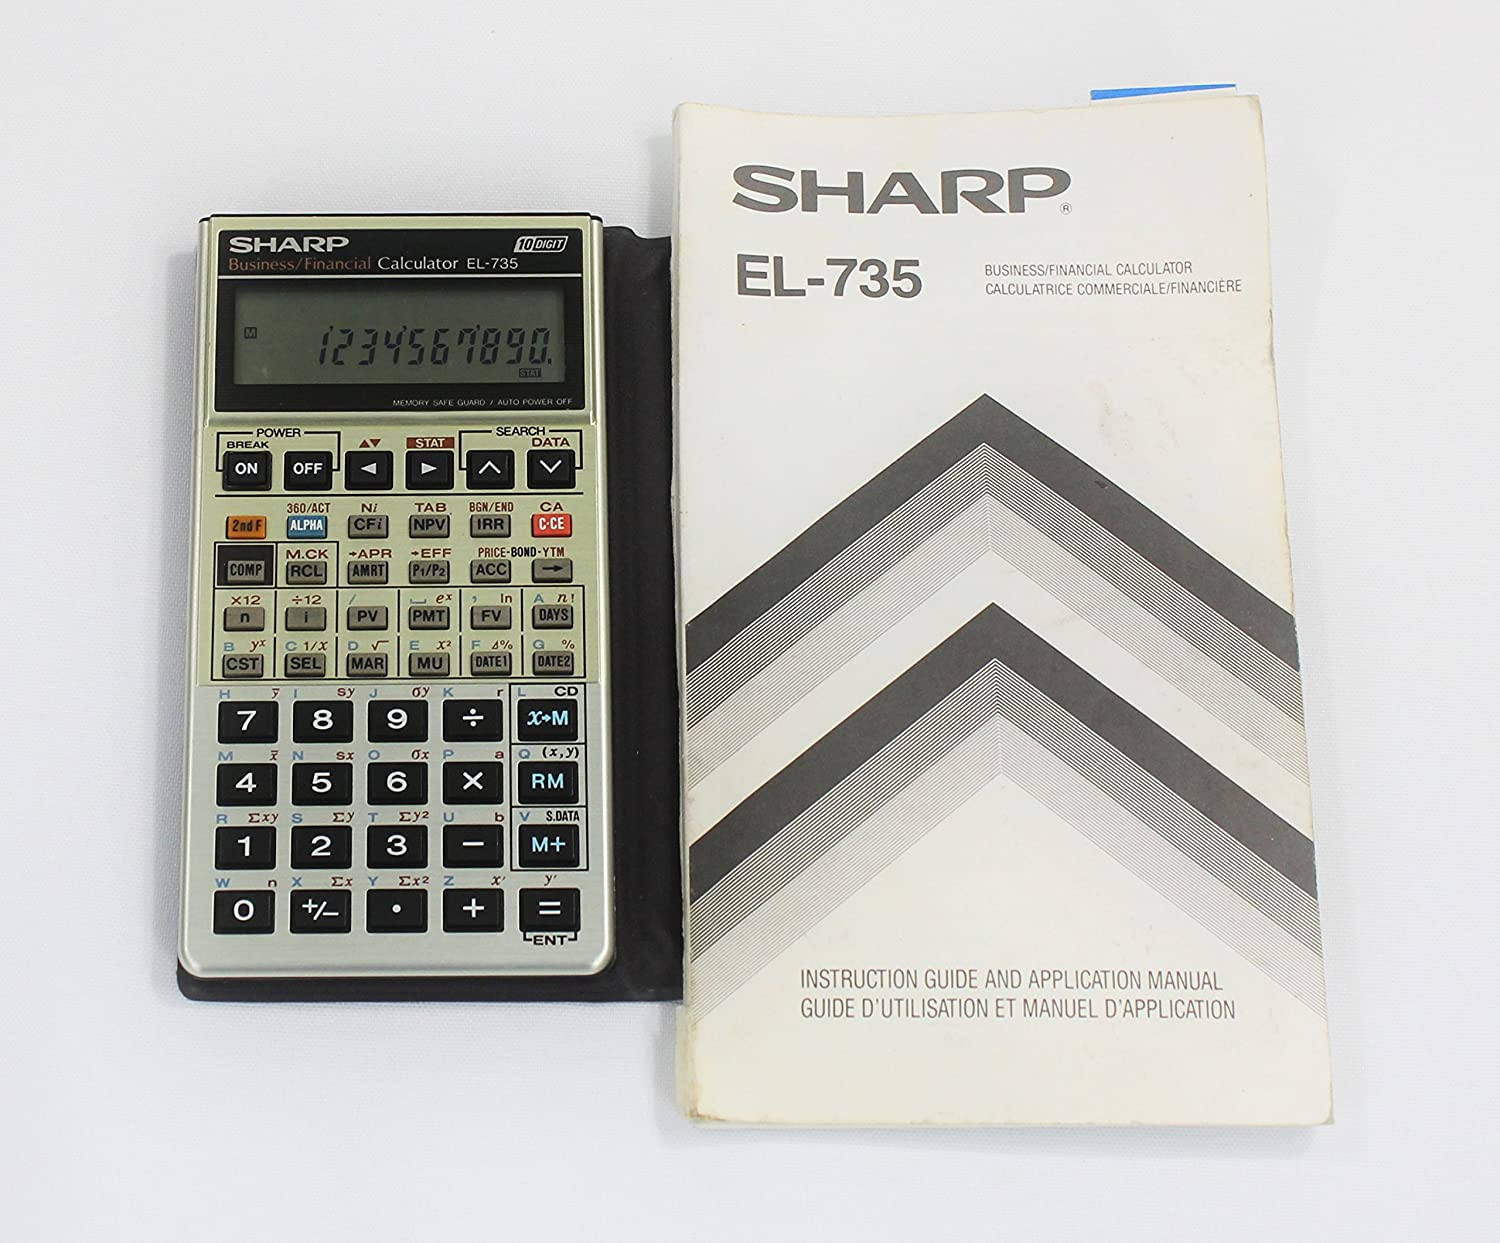 amazon com sharp el 735 business data calculator owner s manual rh amazon com sharp financial calculator el-738 manual sharp el-738 business financial calculator manual